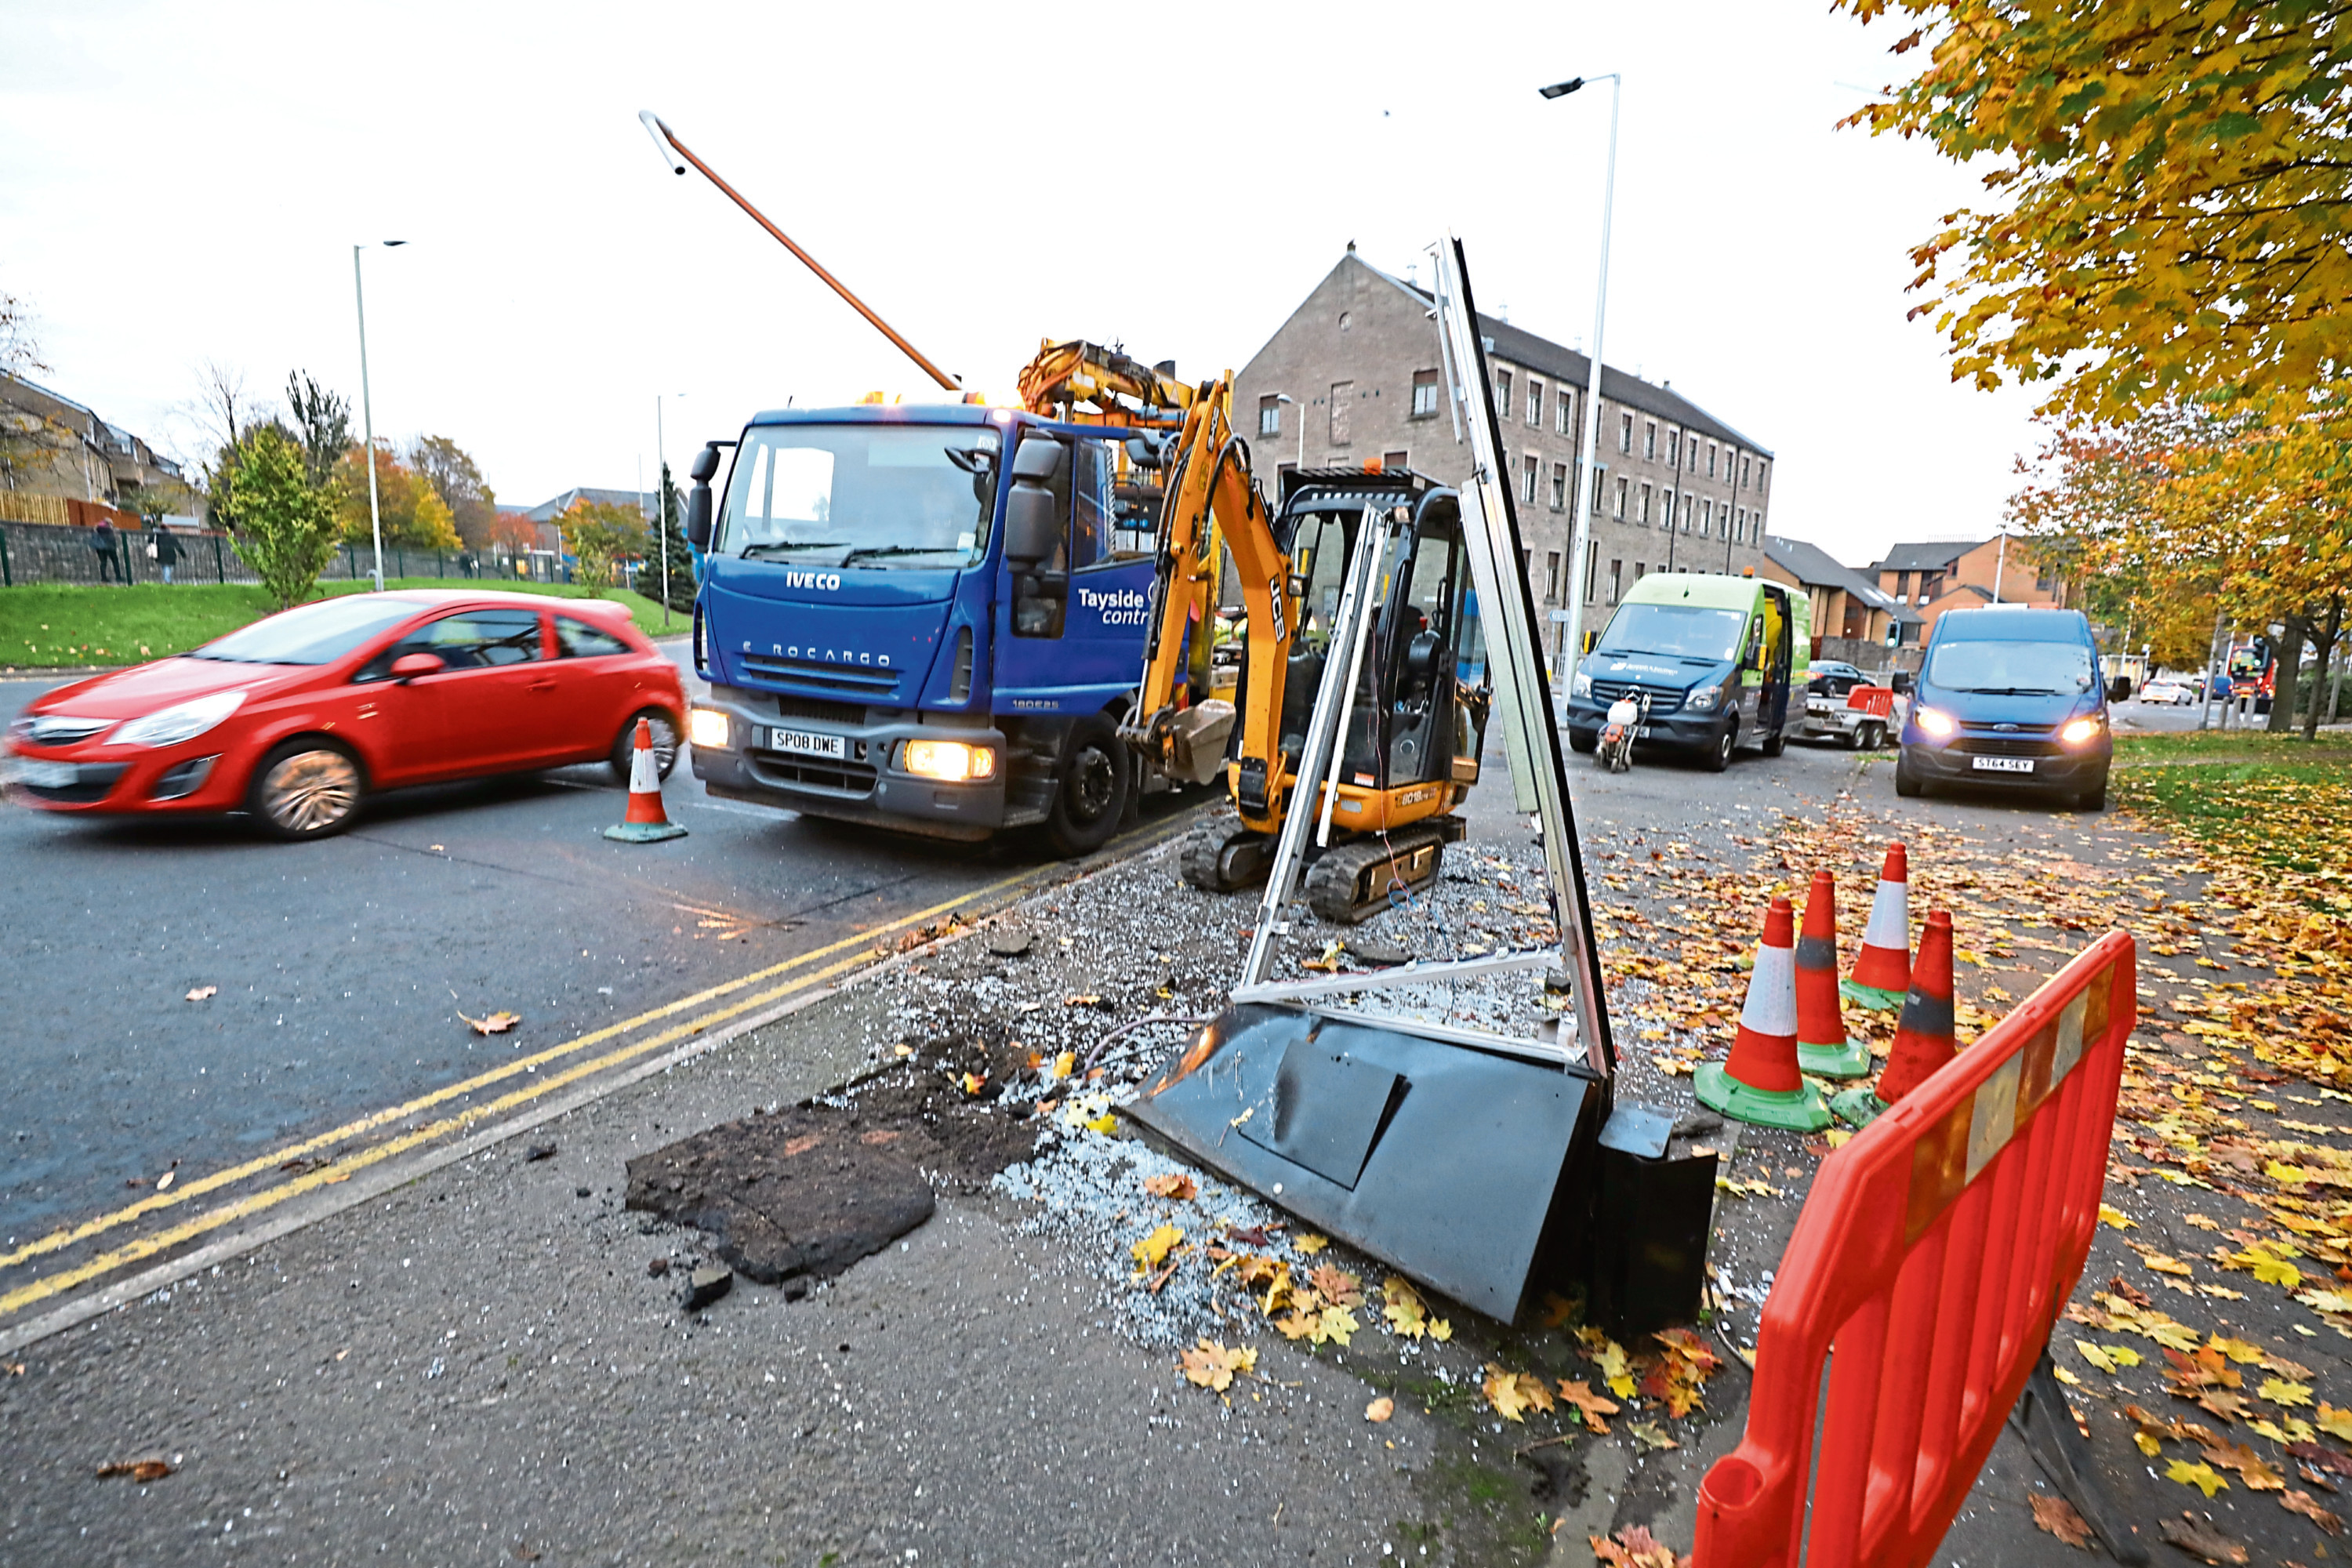 The car collided with this road sign and a lamppost nearby.